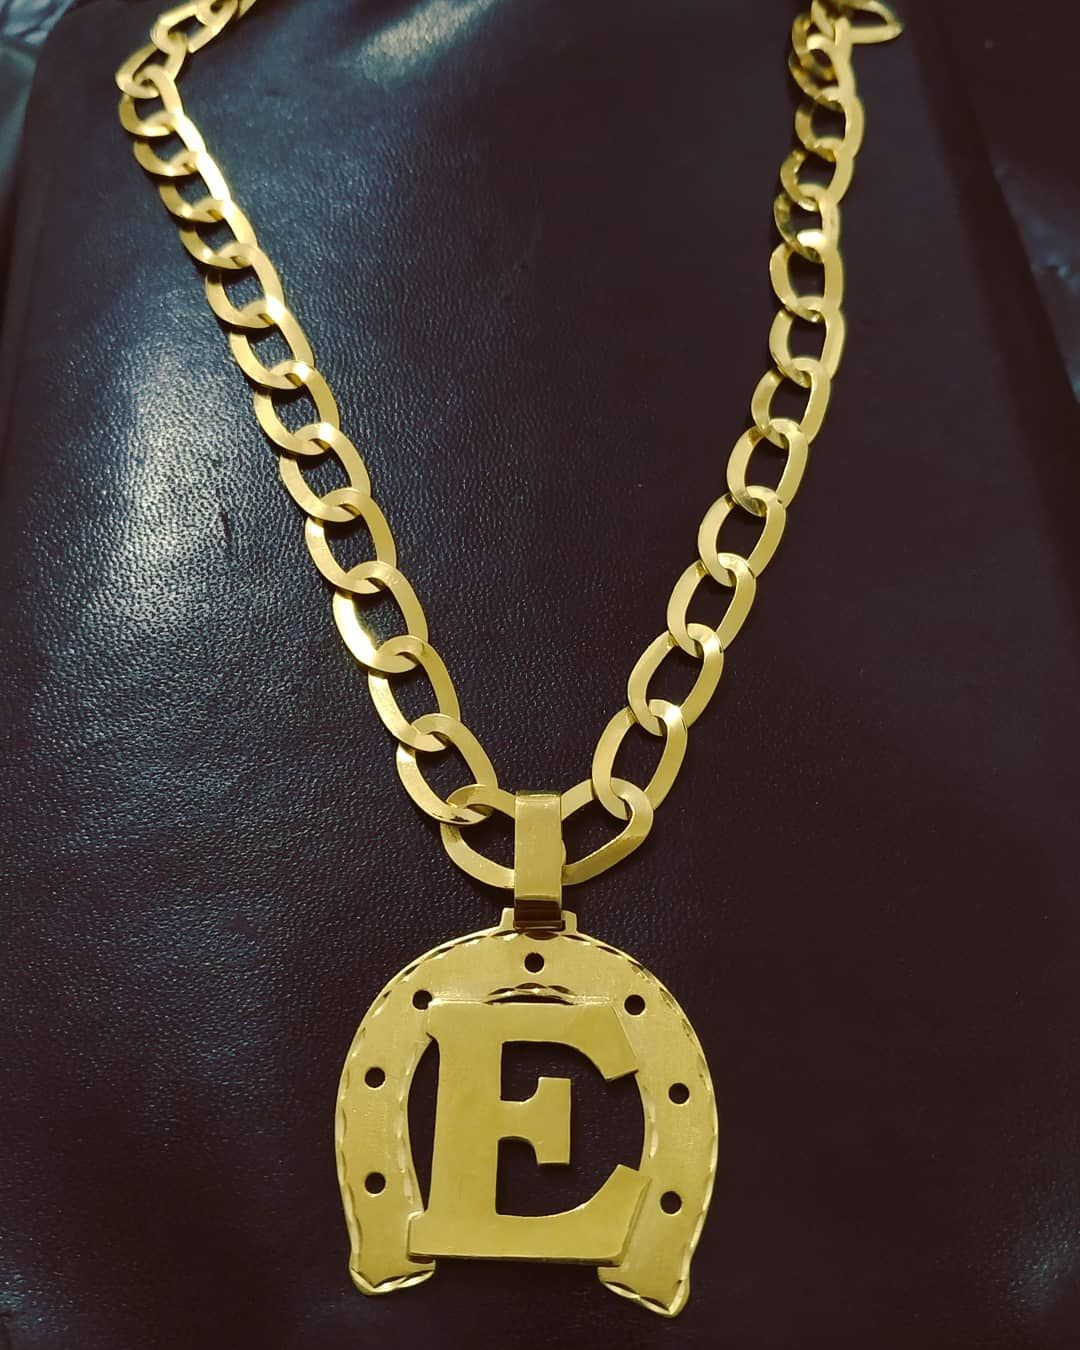 Pin By S On Cordao Gold Jewelry Gold Necklace